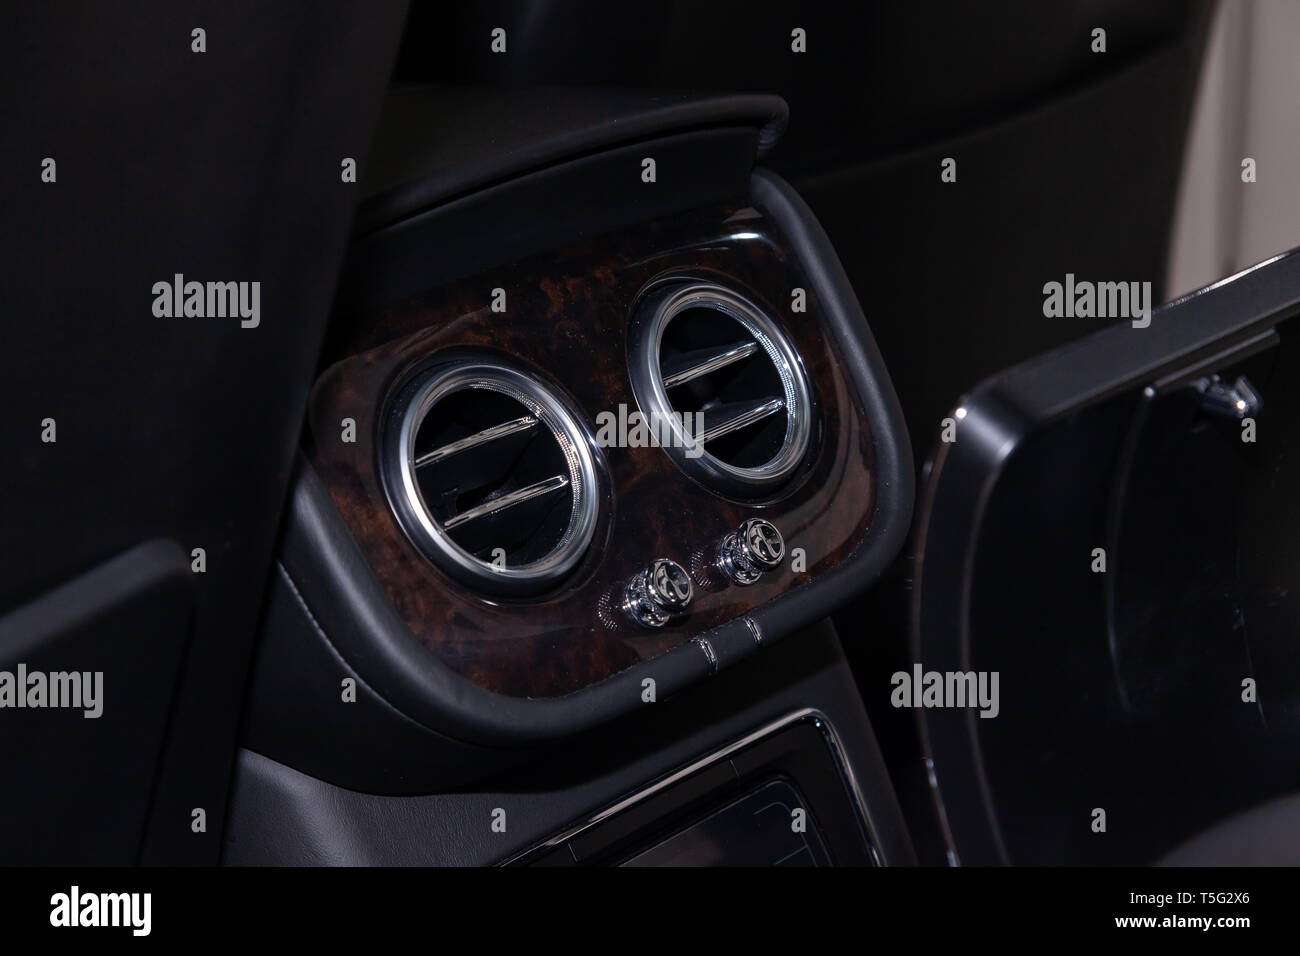 A close-up view of a part of the interior of a modern luxury car with a view of the two rear central ventilation chrome round deflectors of the stove  - Stock Image